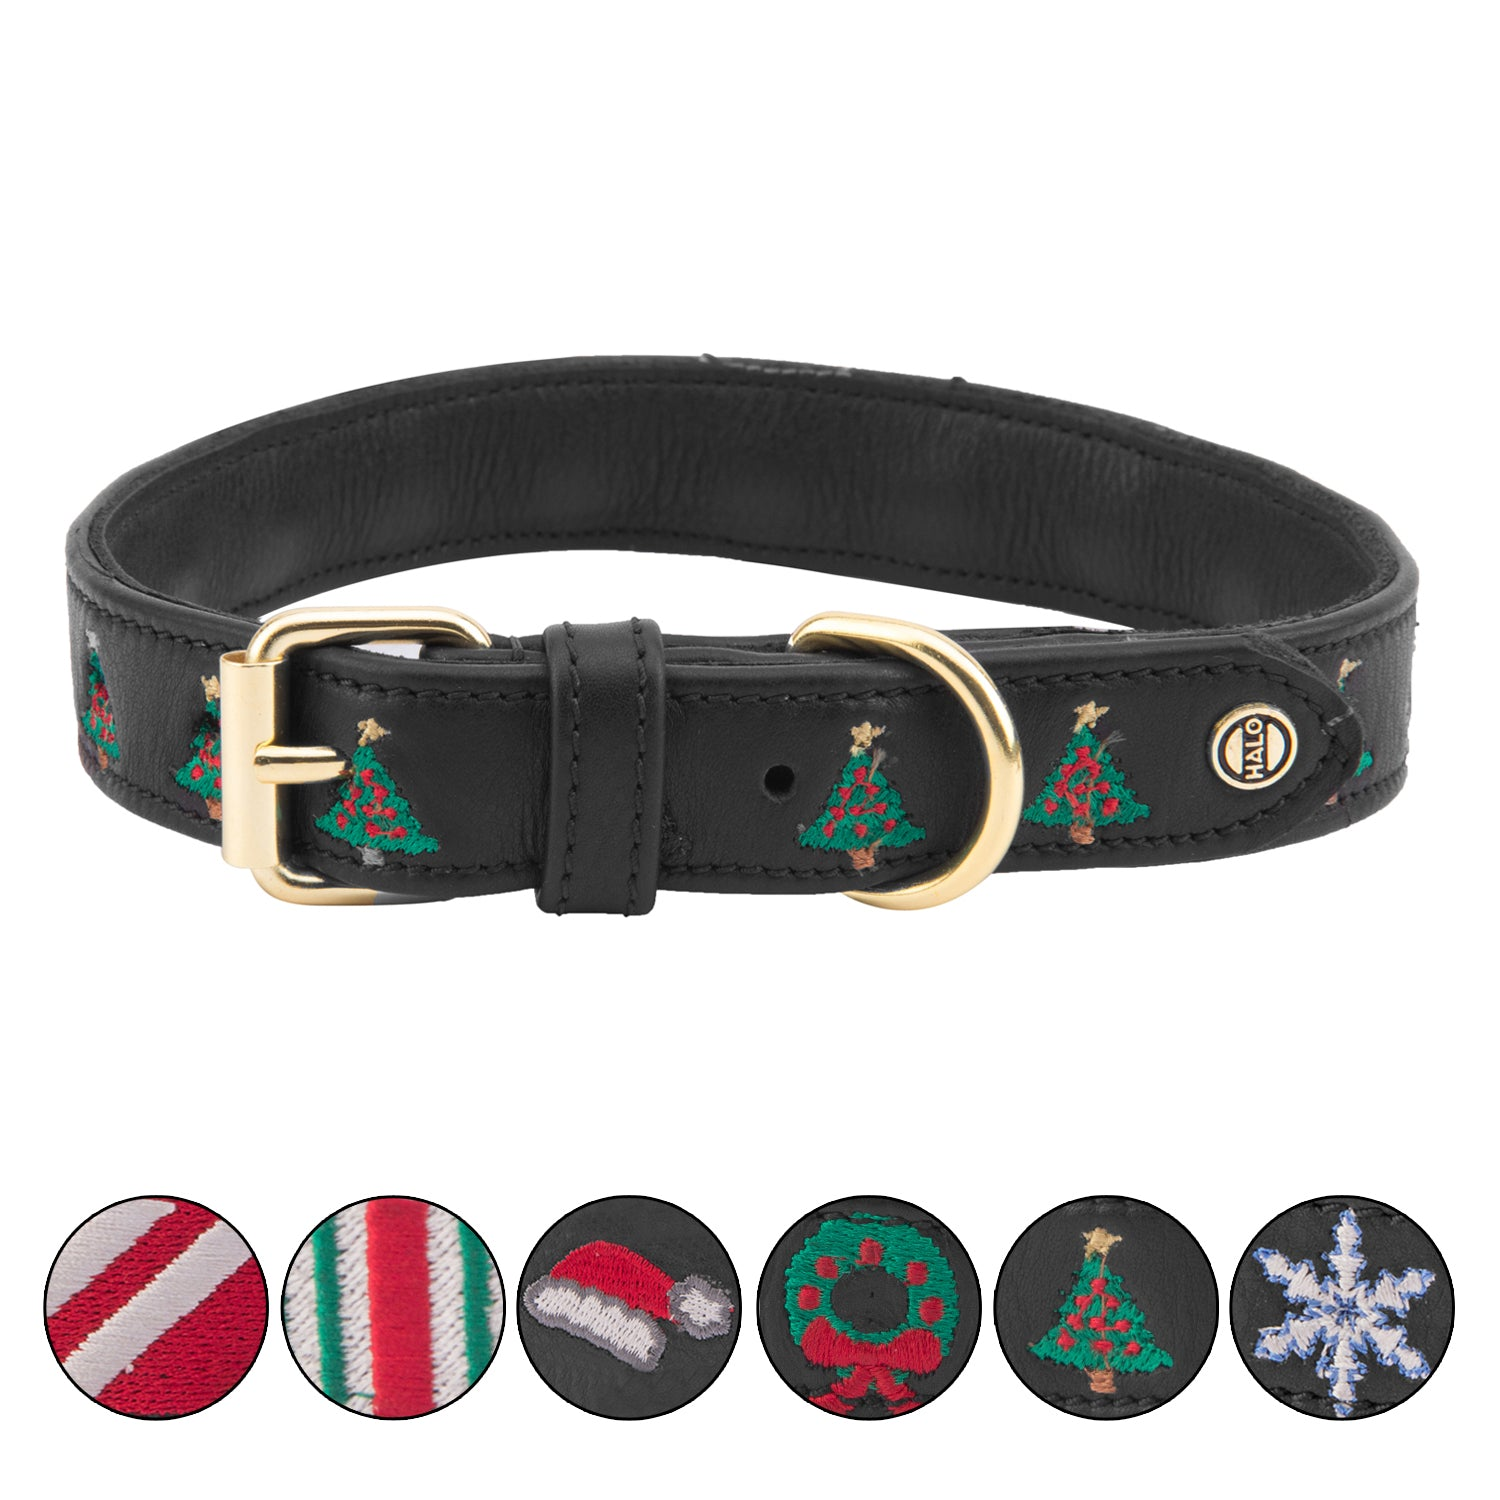 Halo Dog Collar - Leather with Christmas Christmas Tree Embroidery - Halo - Breeches.com